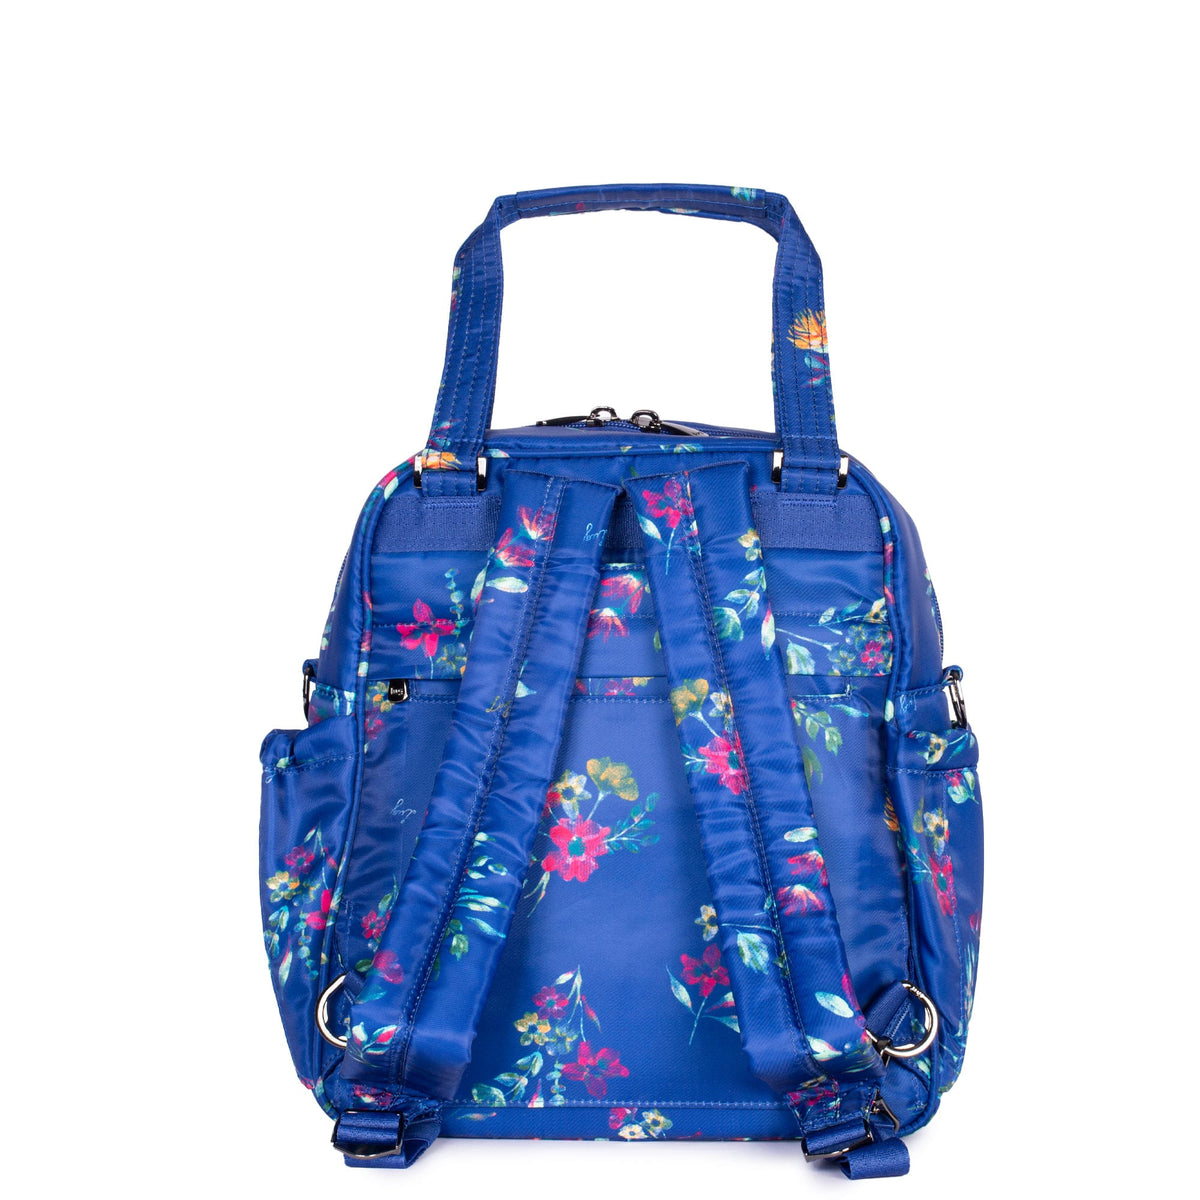 Mini Puddle Jumper 3 Convertible Bag